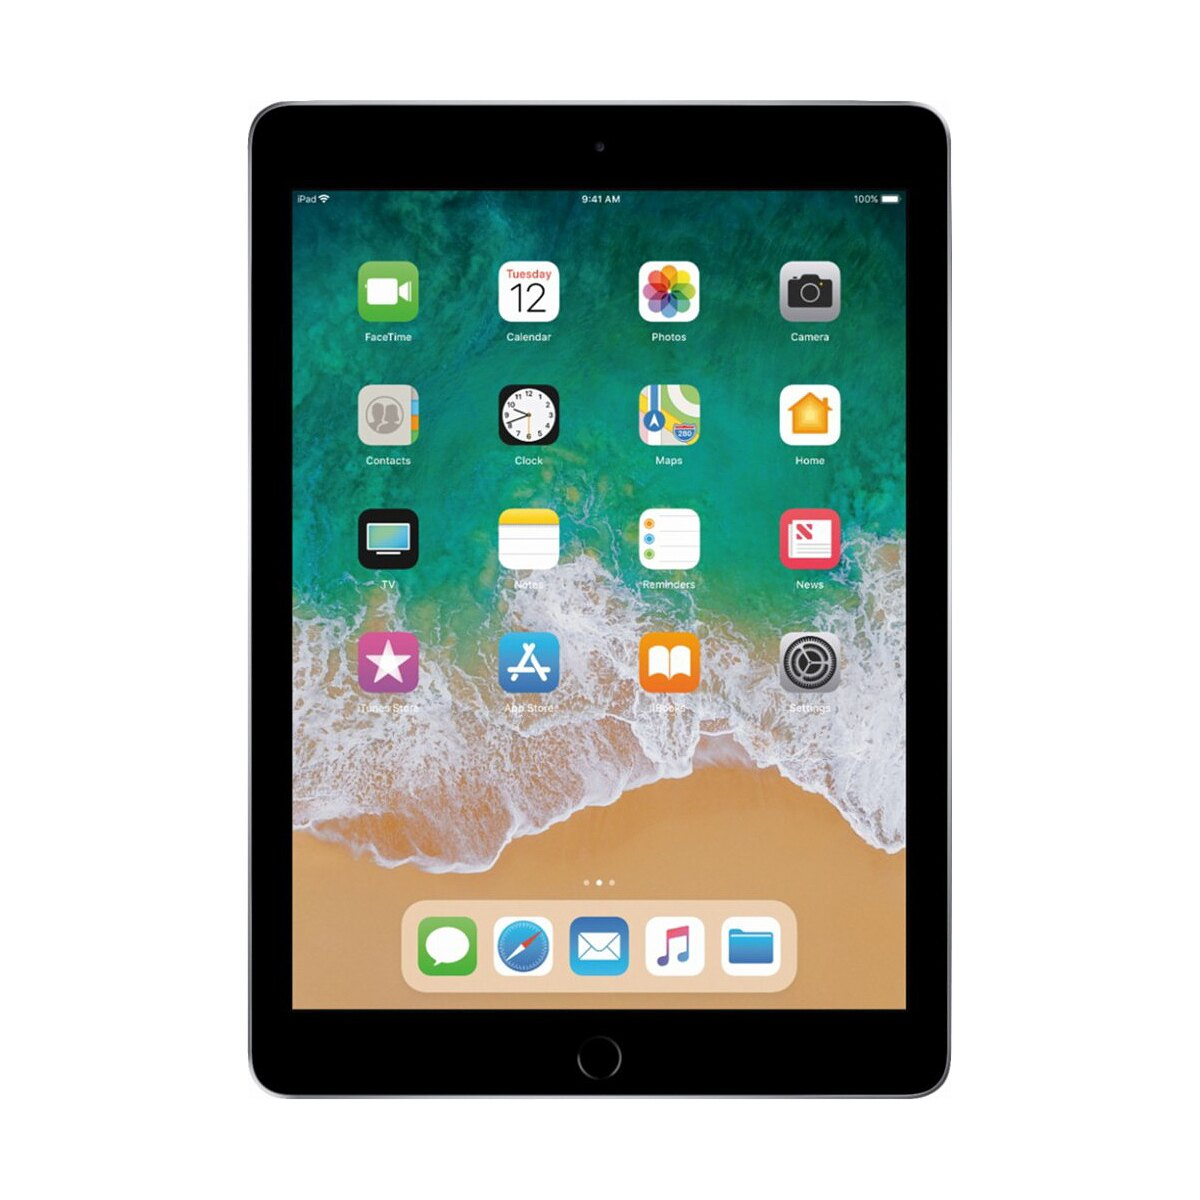 "Apple iPad 9.7"" Multi-Touch Retina Display 32GB A10 Chip Wi-Fi Tablet MR7F2LL/A - Space Gray (2018) 0"